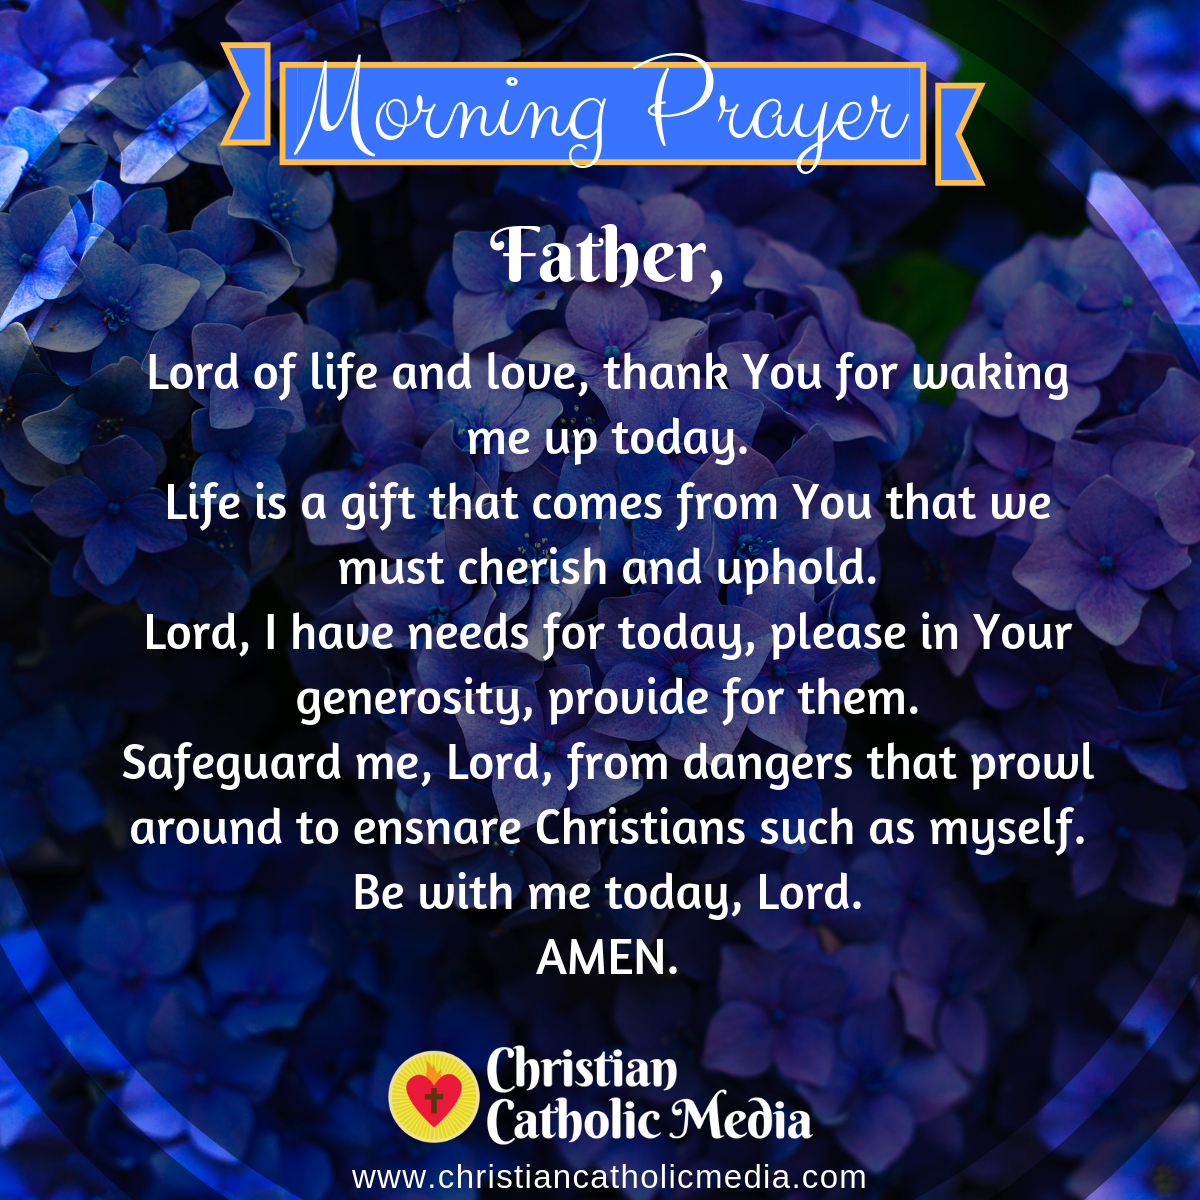 Evening Prayer Catholic Tuesday 3-24-2020